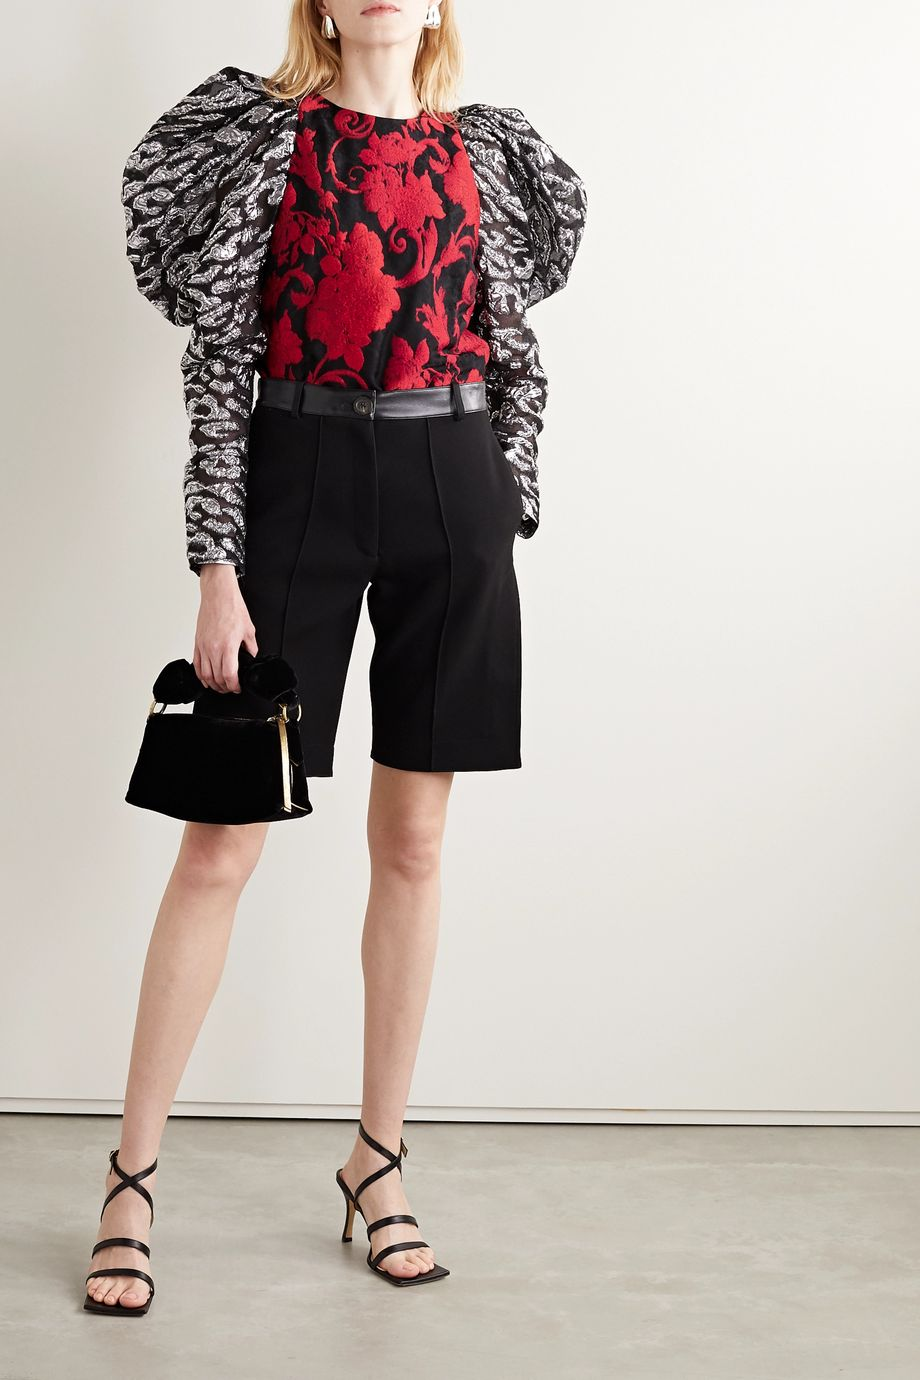 Dries Van Noten Brocade and tulle blouse